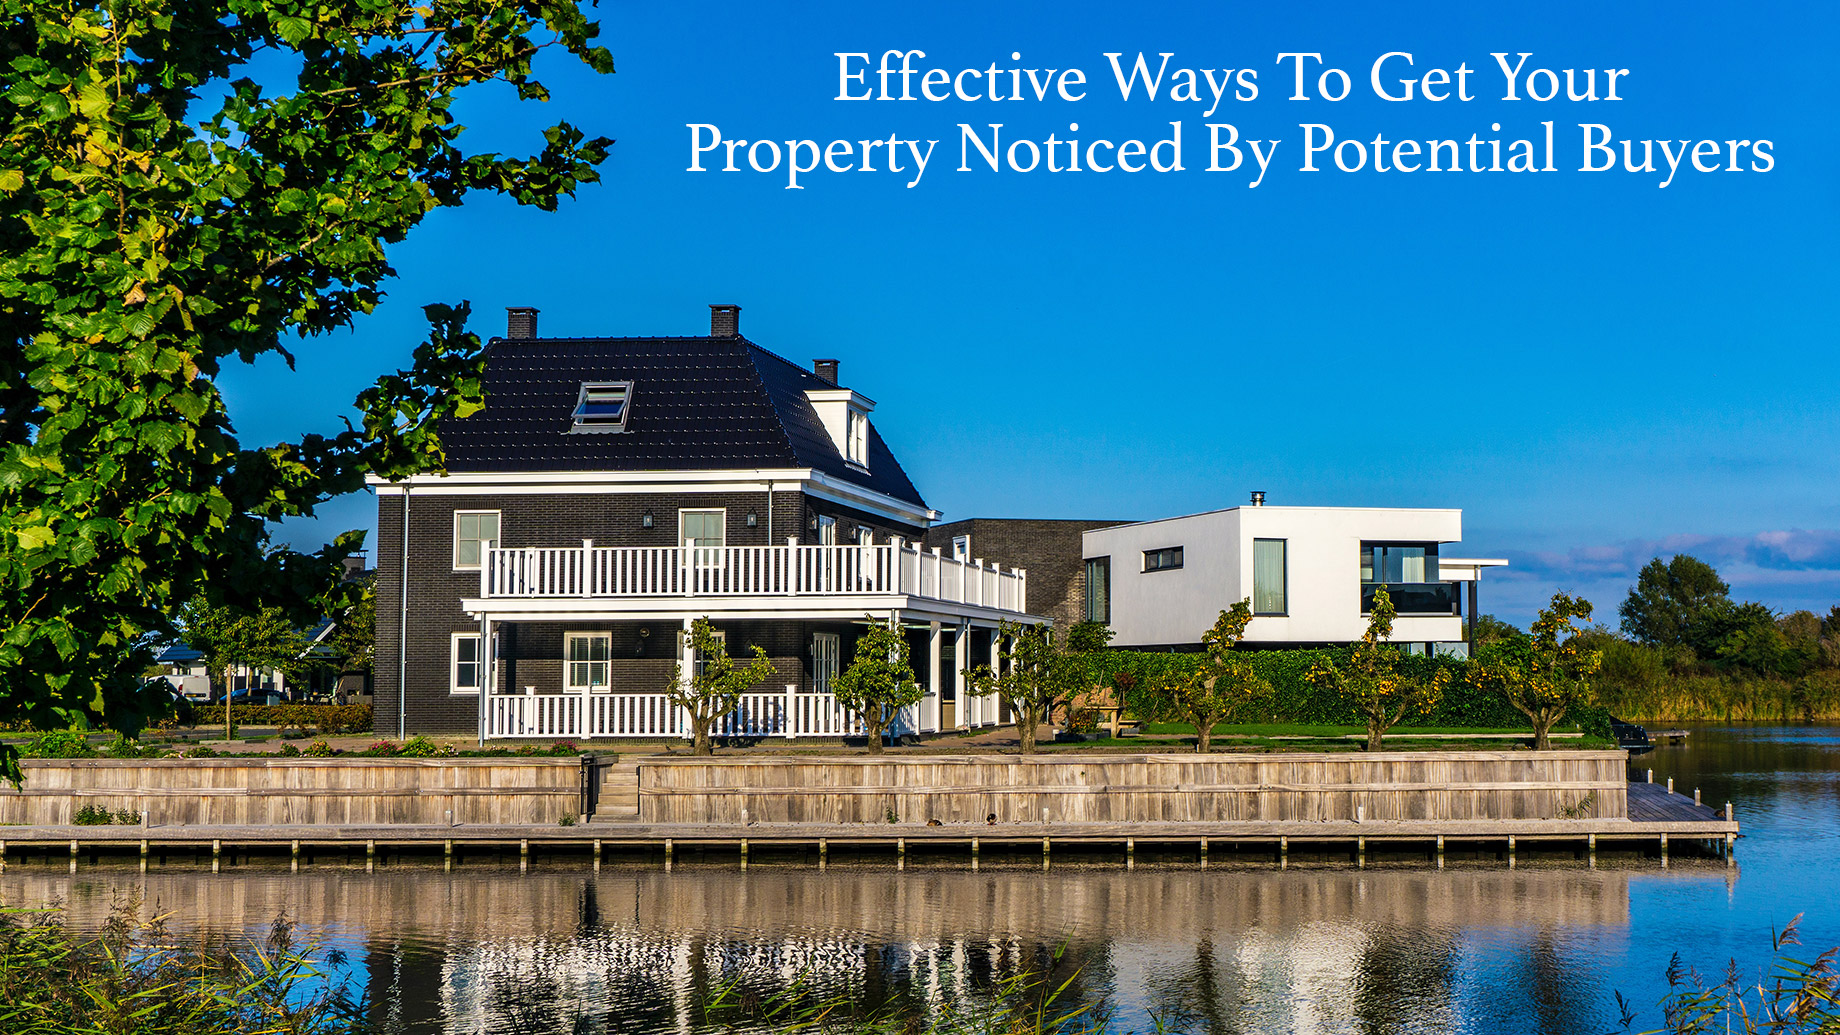 Effective Ways To Get Your Property Noticed By Potential Buyers